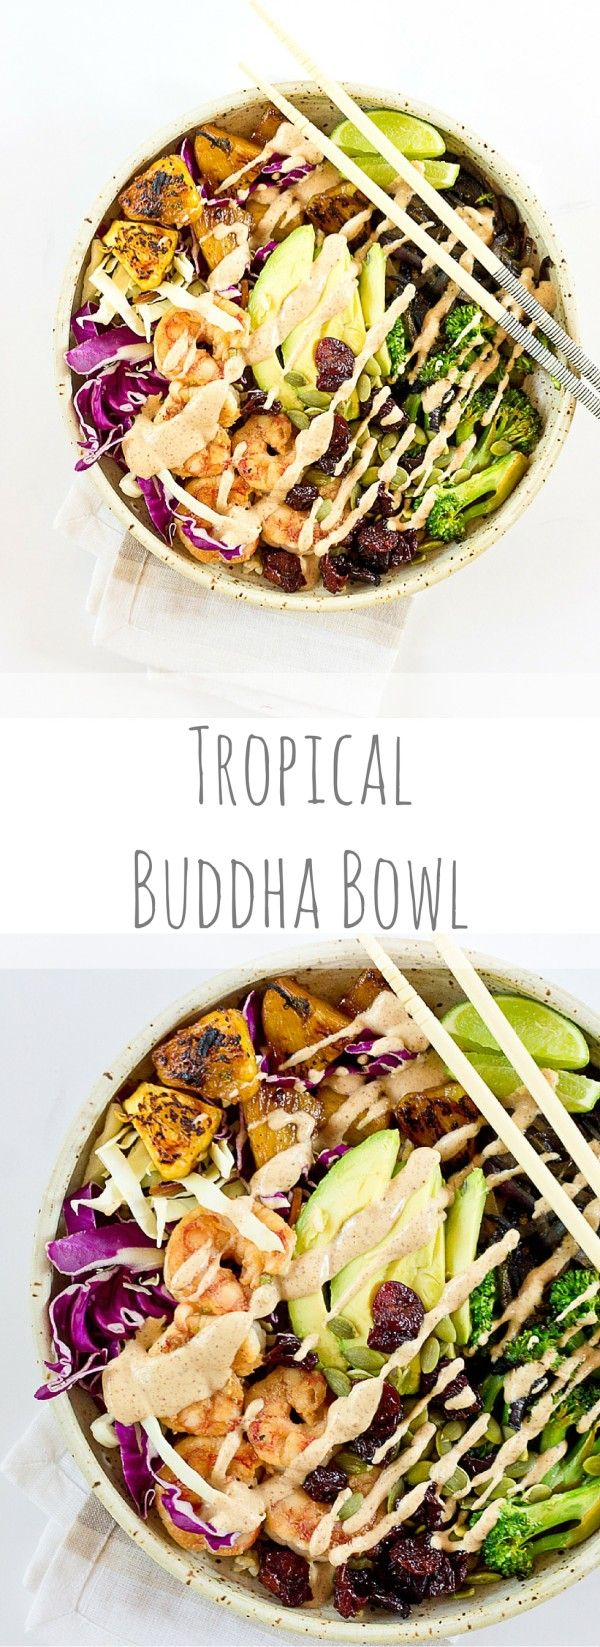 This Tropical Buddha Bowl is infused with island flavor from the Coconut Brown Rice to the Almond Butter Lime dressing. Perfectly grilled shrimp, pineapple, tart cherries, and a bowl full of veggies! It's great for meal prep.